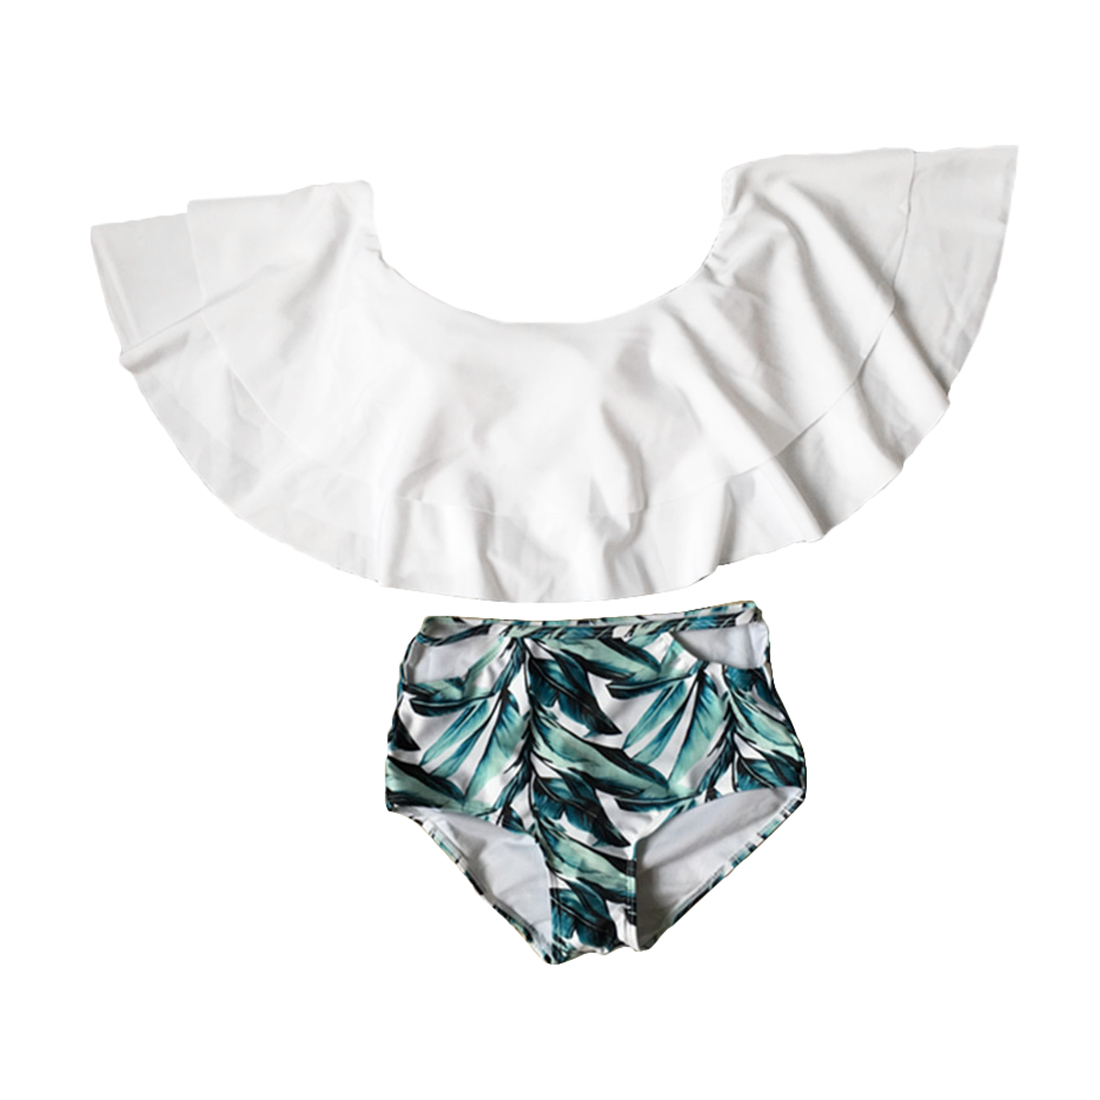 Knus Wonen Knus Off Shoulder Bikini Set Women Two Piece Off Shoulder Ruffled